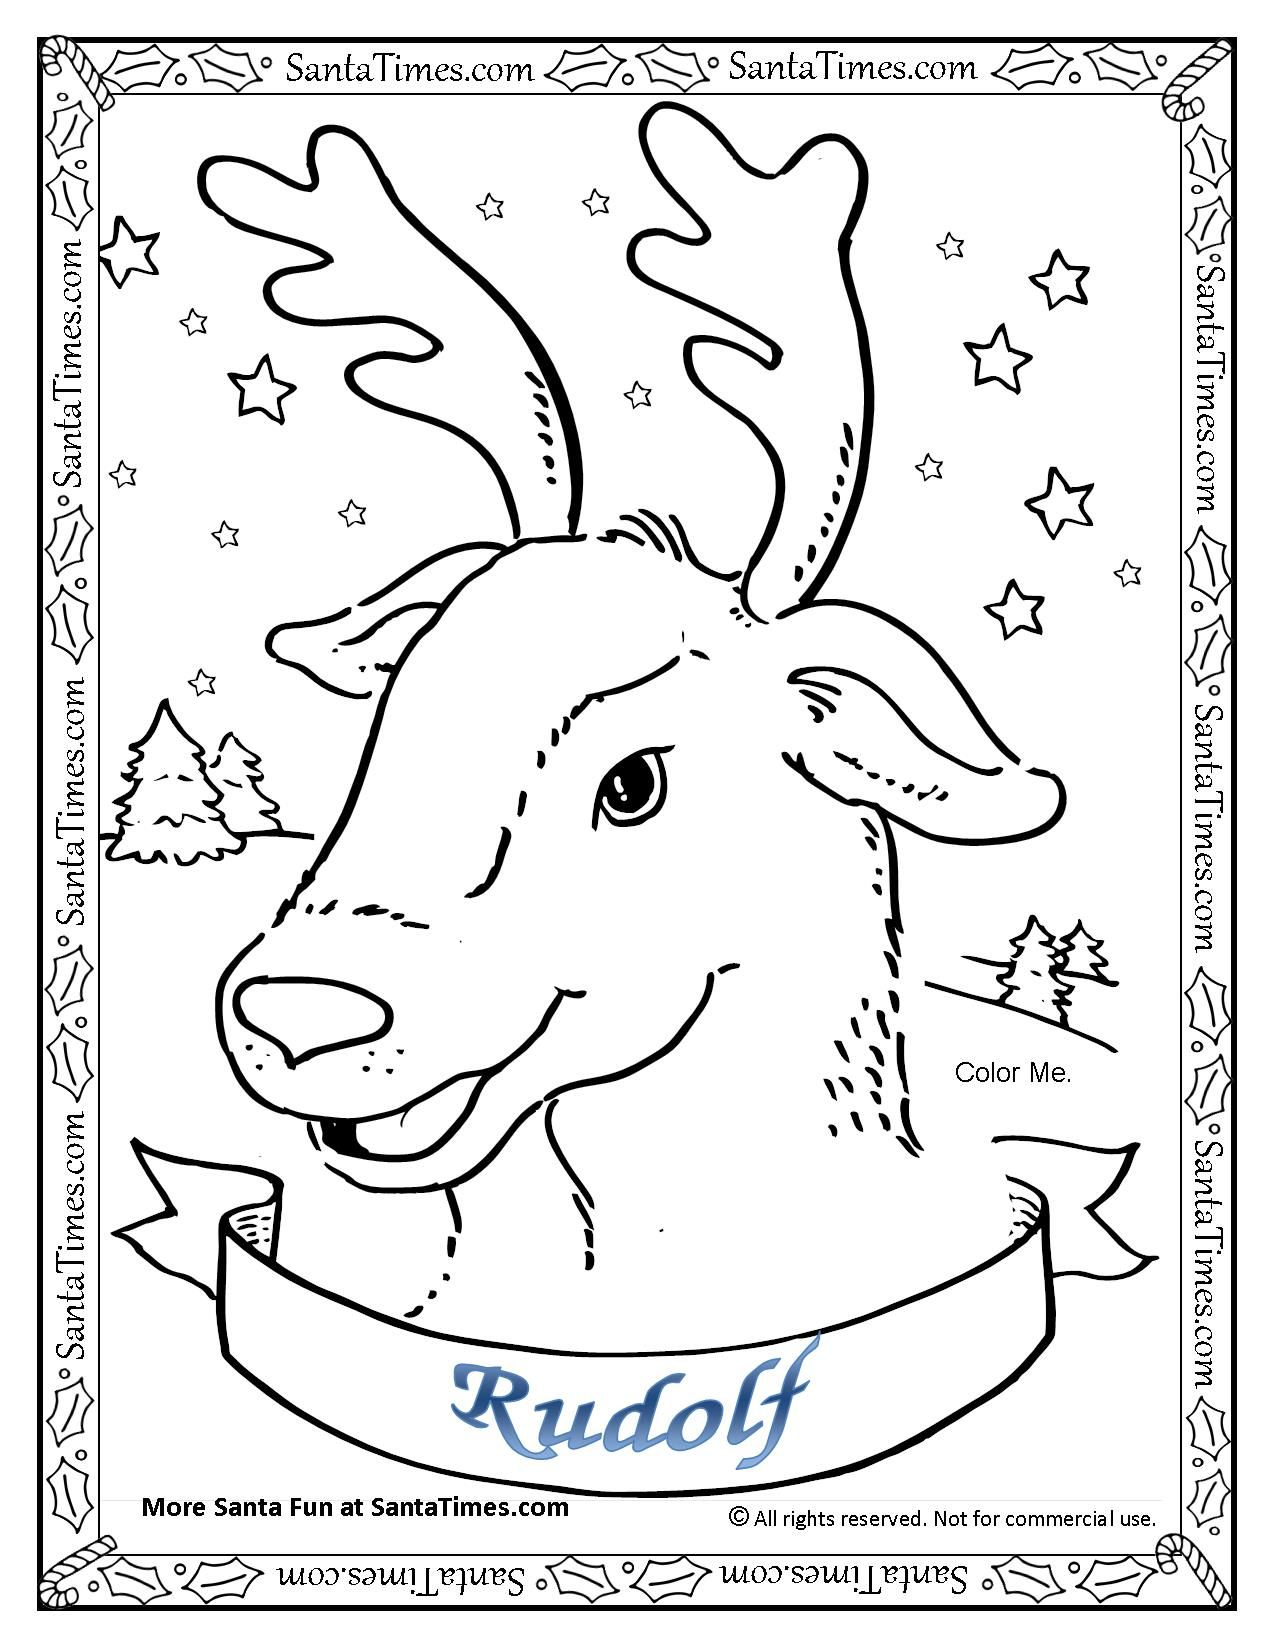 Rudolf the Red Nosed Reindeer Coloring